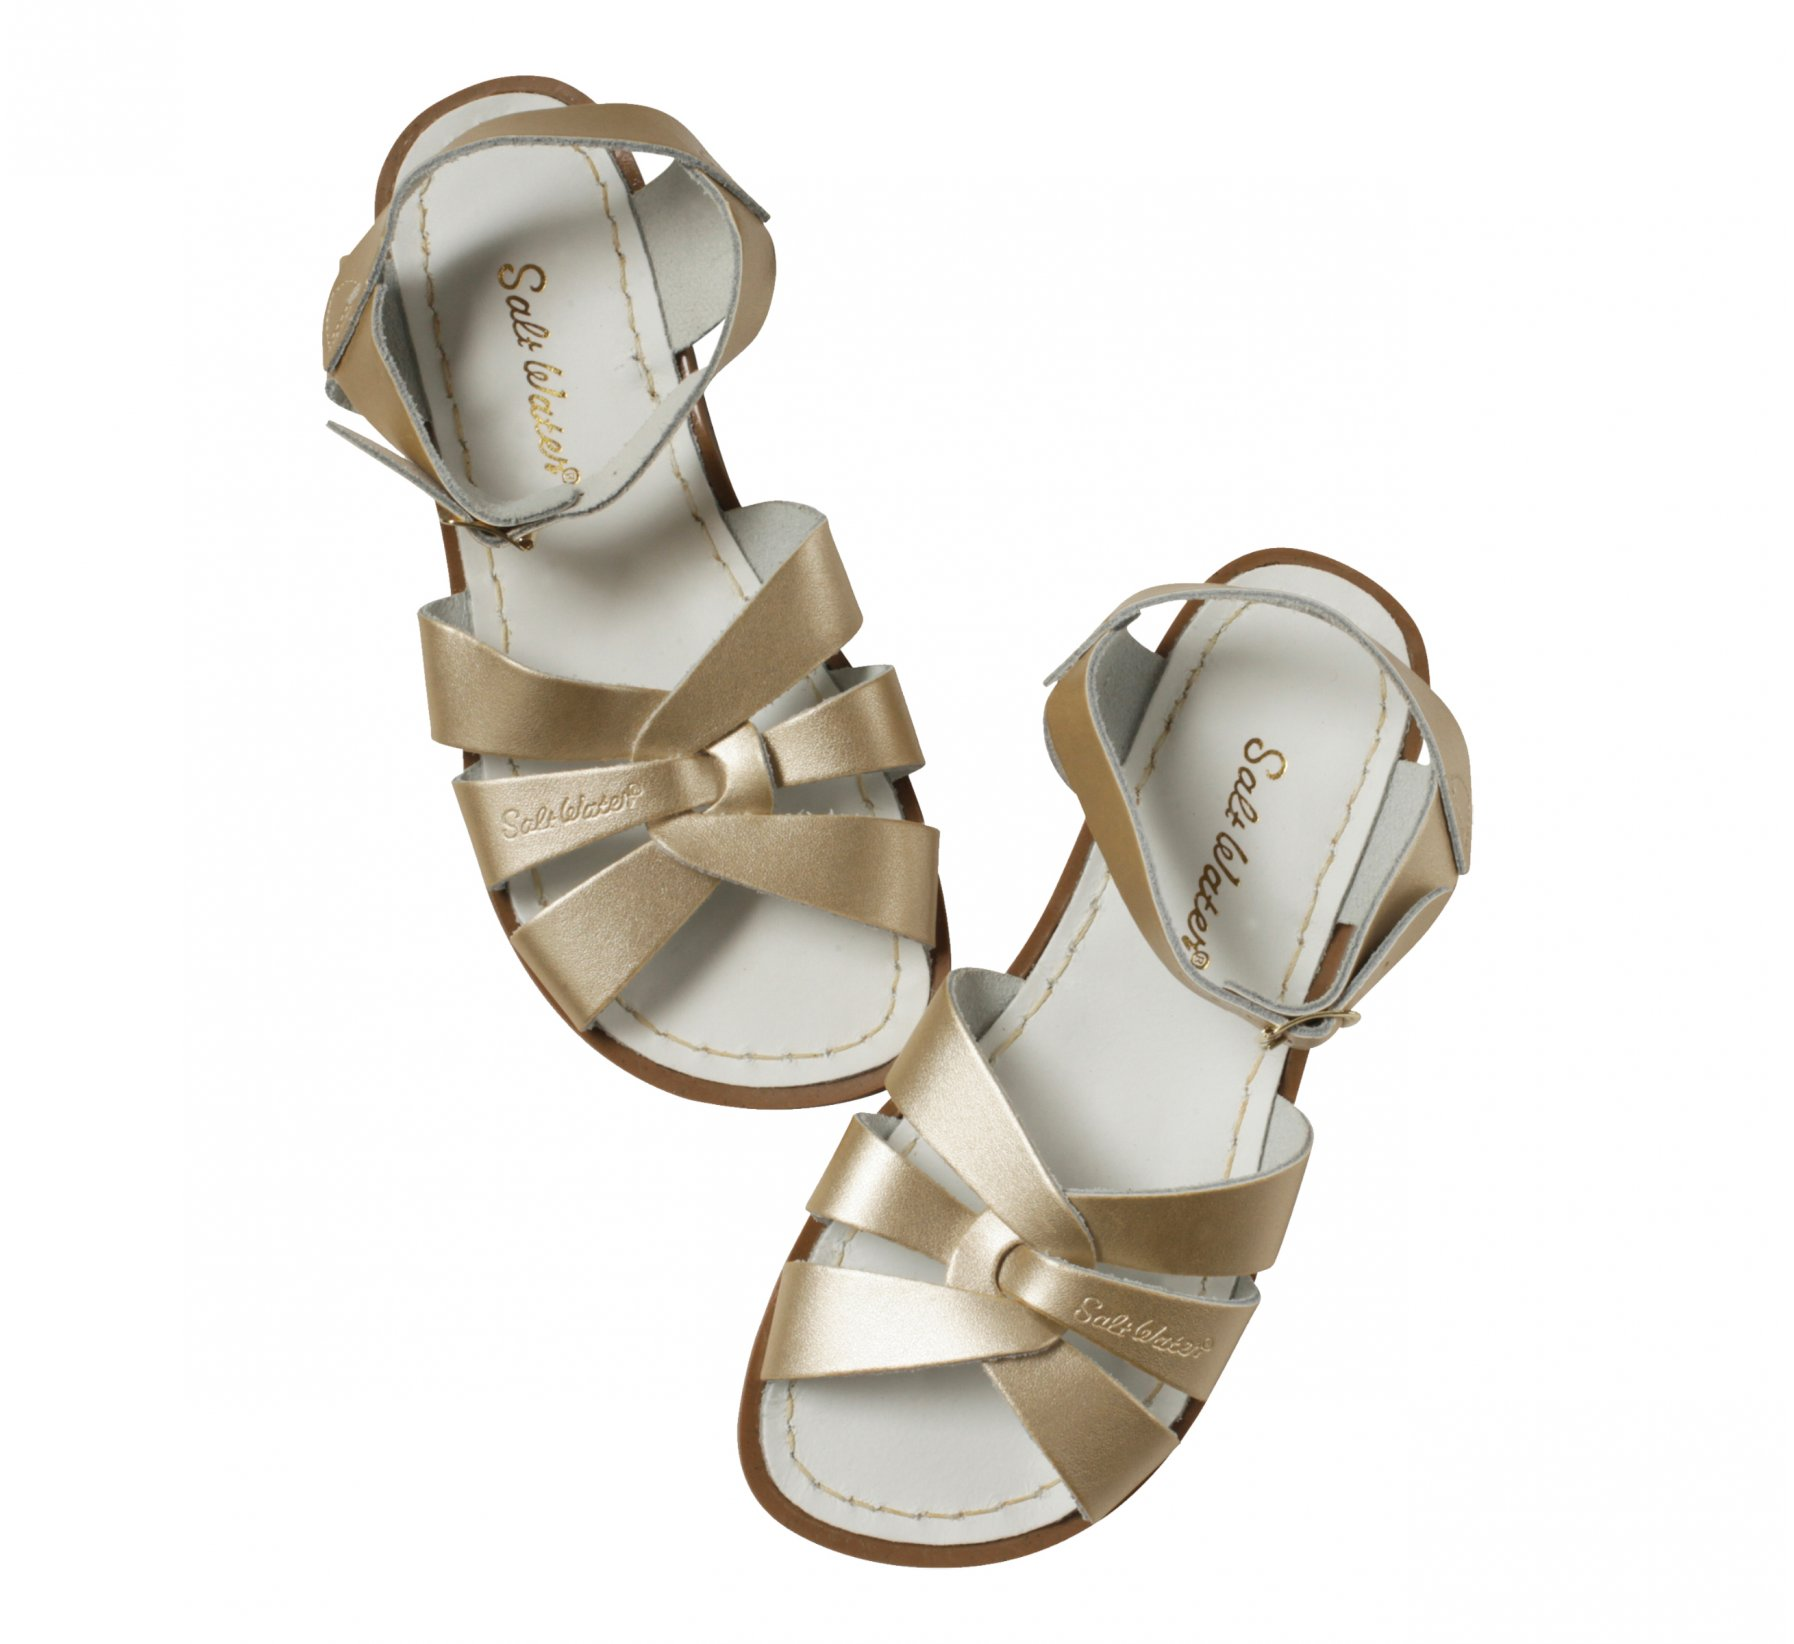 Original Gold - Salt Water Sandals